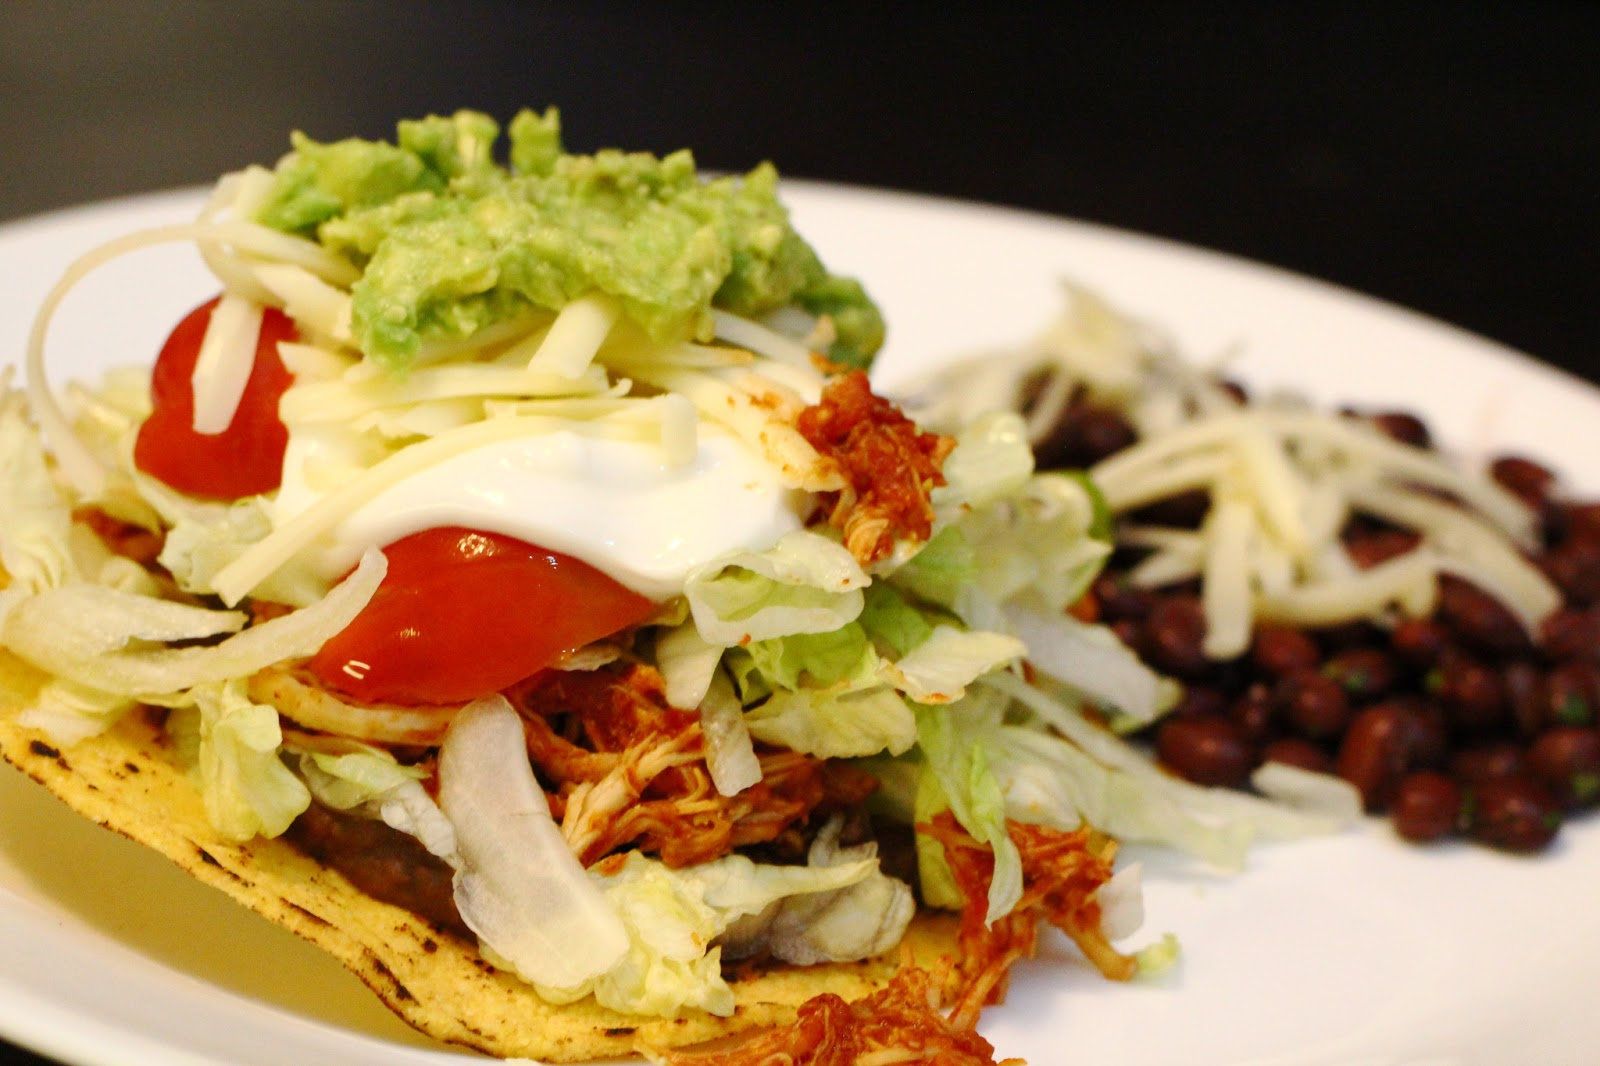 Slow Cooker Chicken Tostadas - Marie's Cooking Adventures